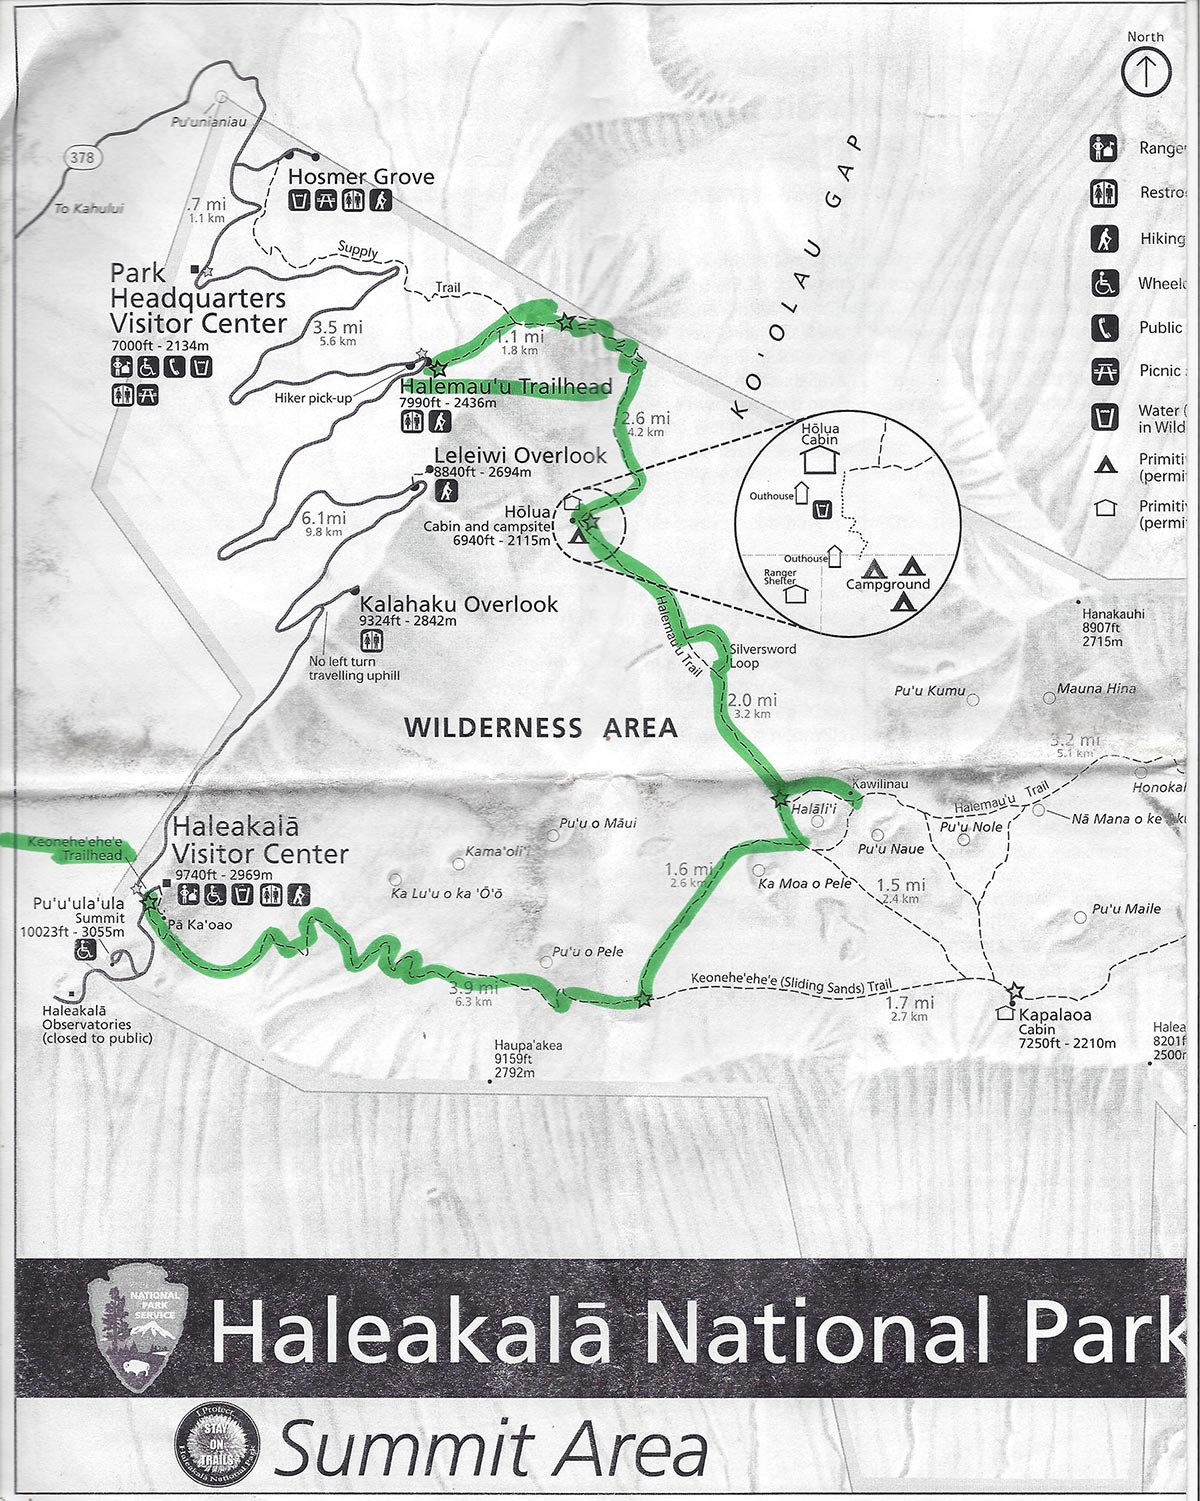 Our trail map for 11-mile hike across Haleakala volcano.